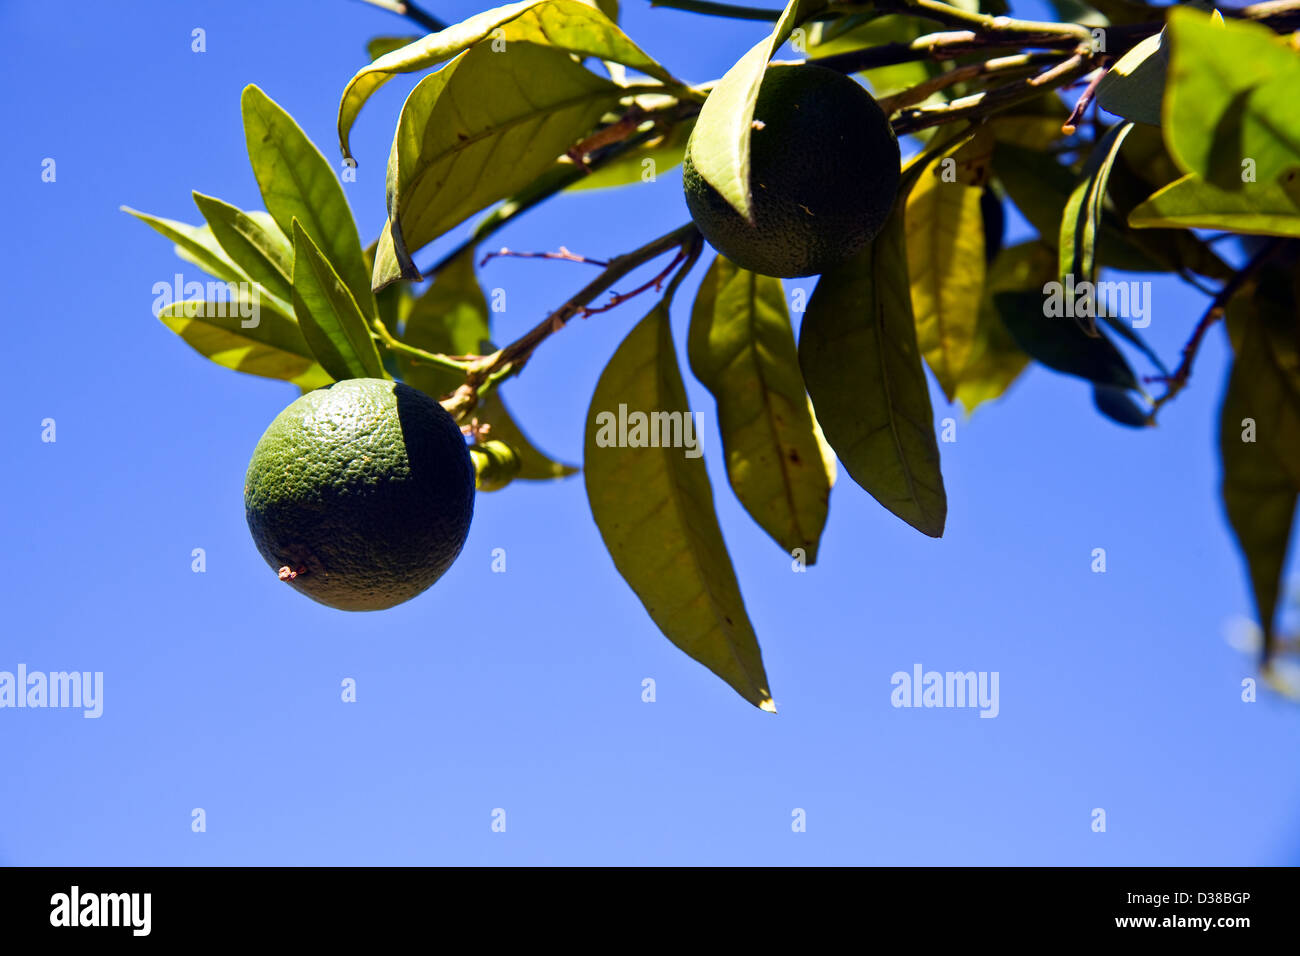 Oranges growing in Cordoba, Andalucia, Spain - Stock Image